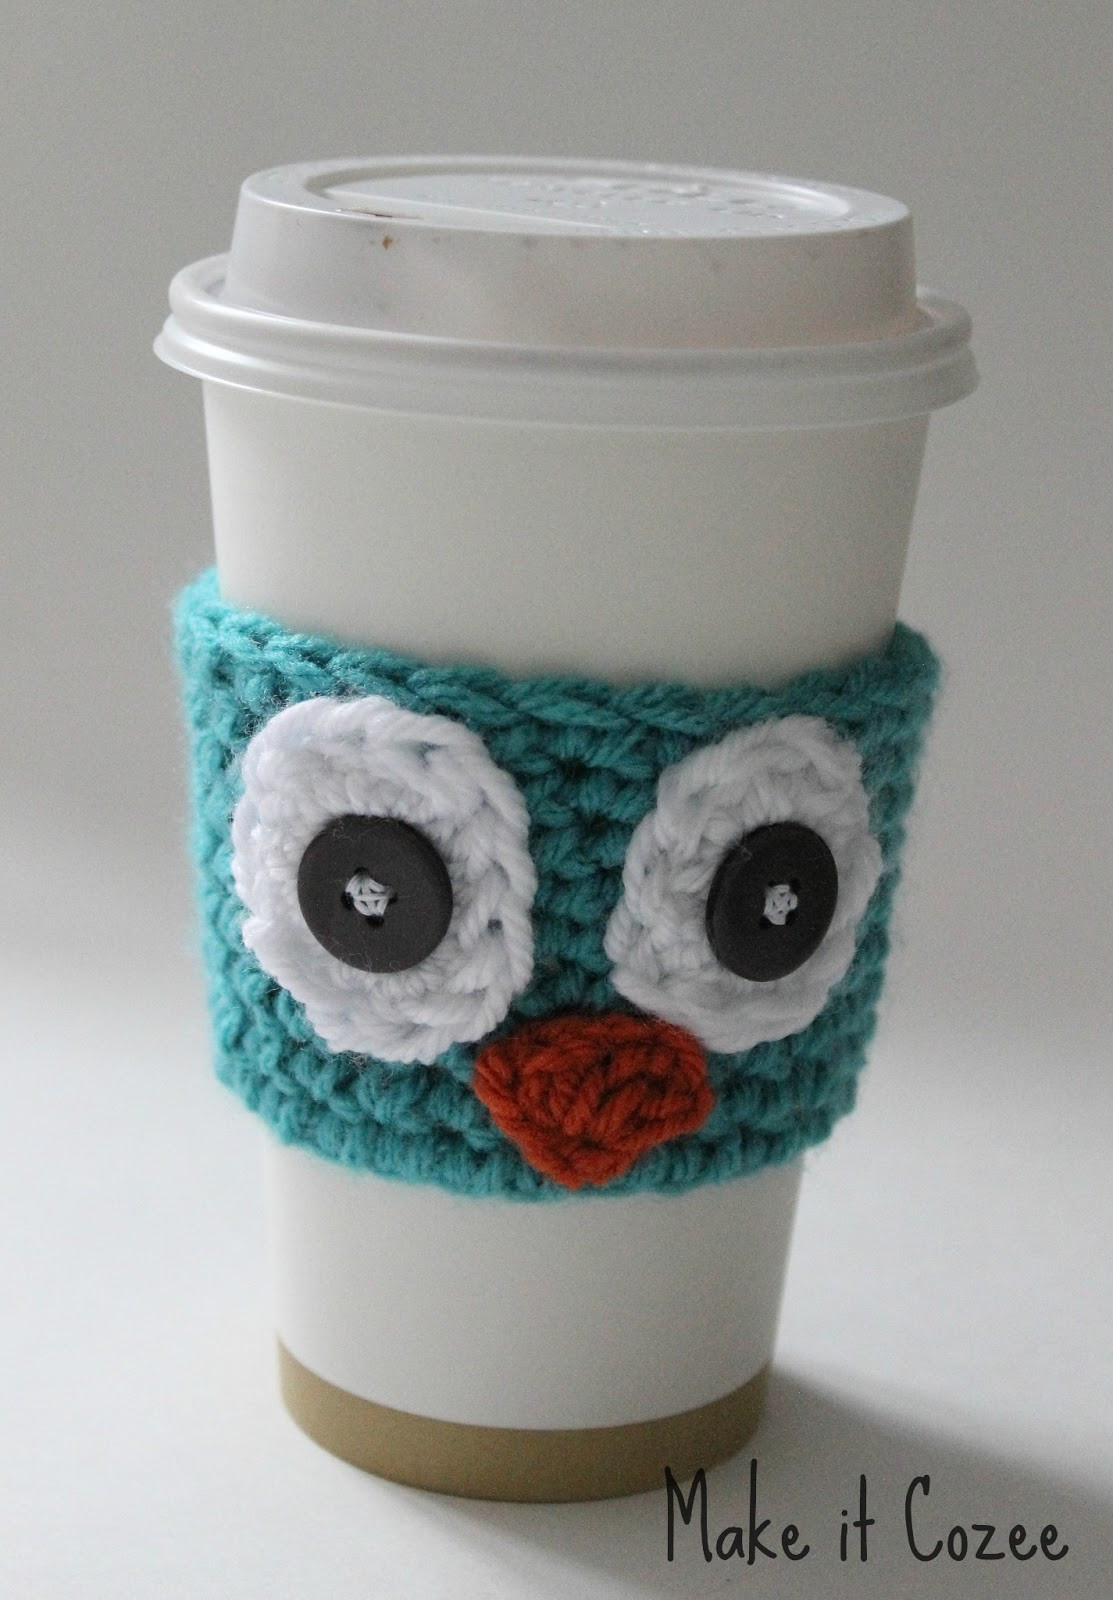 Crochet Coffee Cup Cozy Inspirational Make It Cozee Crochet Owl Coffee Cozy Of Crochet Coffee Cup Cozy New Crochet Tea Cozy Coffee Cup Sleeve Coffee Sleeve Mug Cozy